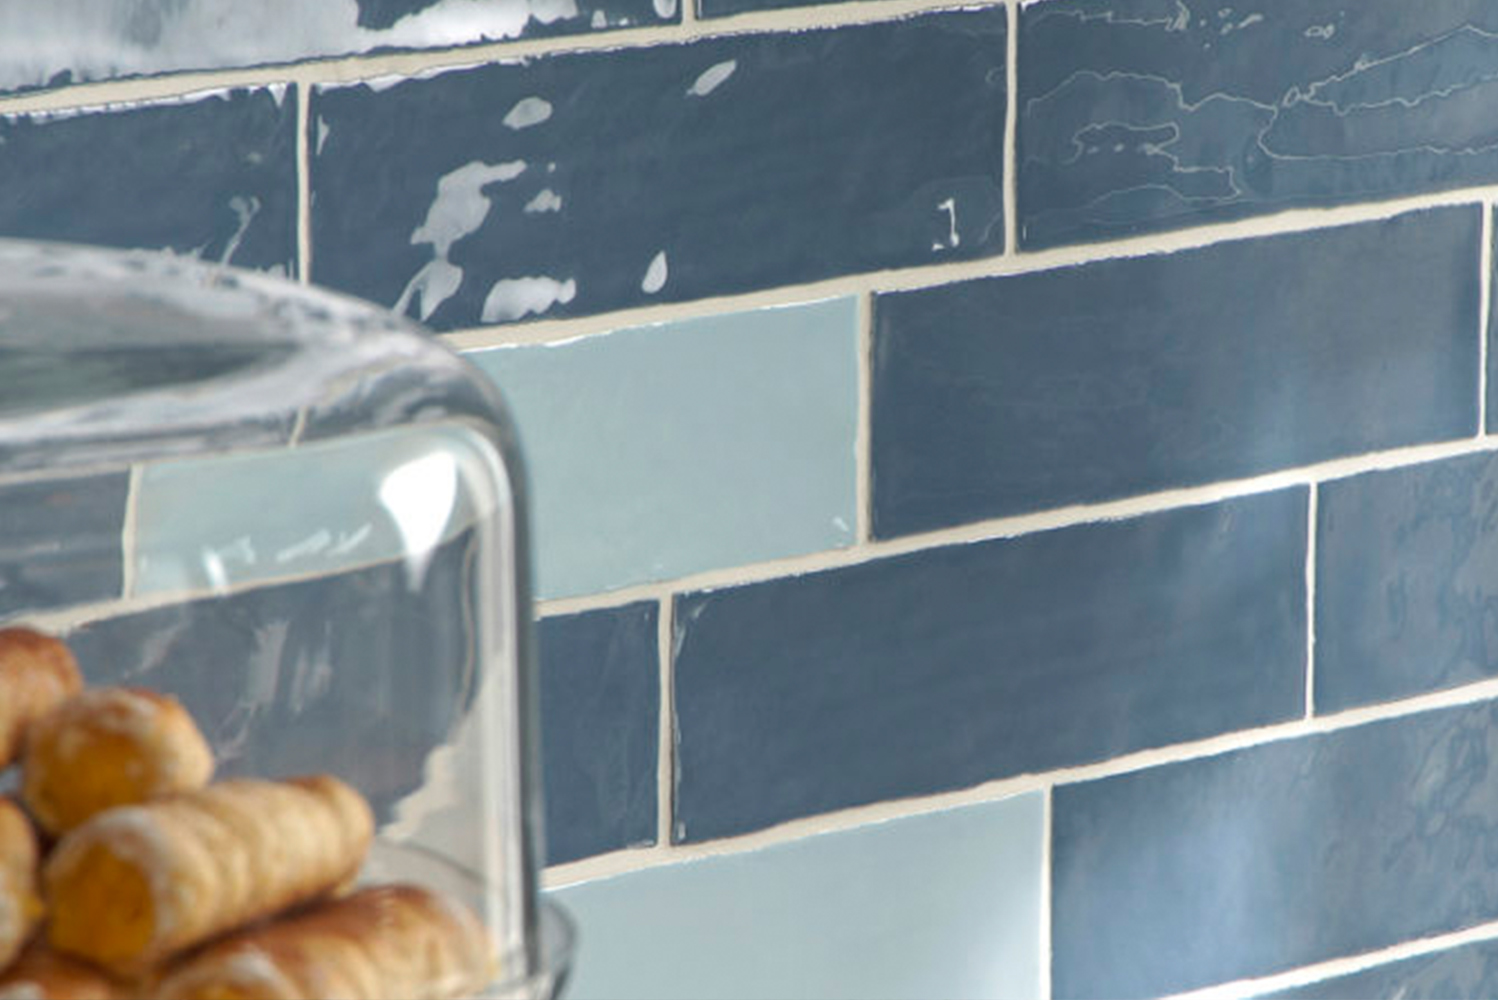 The collection of glazed ceramic subway tiles has a smooth uneven finish, giving the product a weathered look.